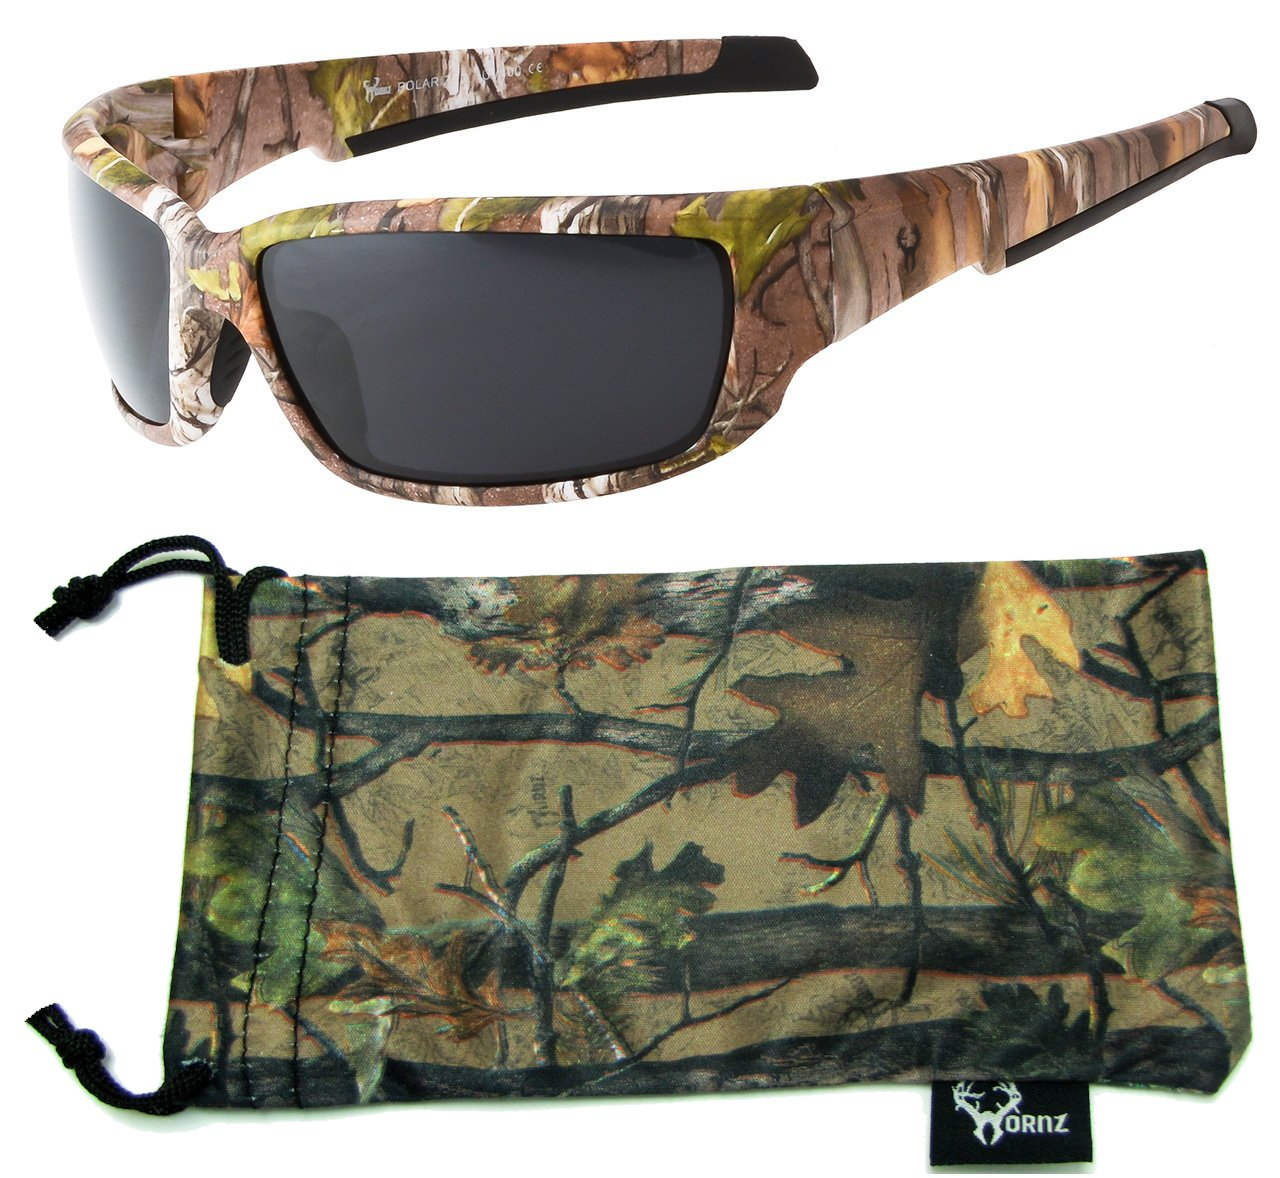 Hornz Brown Forest Camouflage Polarized Sunglasses for Men Full Frame Strong Arms & Free Matching Microfiber Pouch - Brown Camo Frame - Smoke Lens